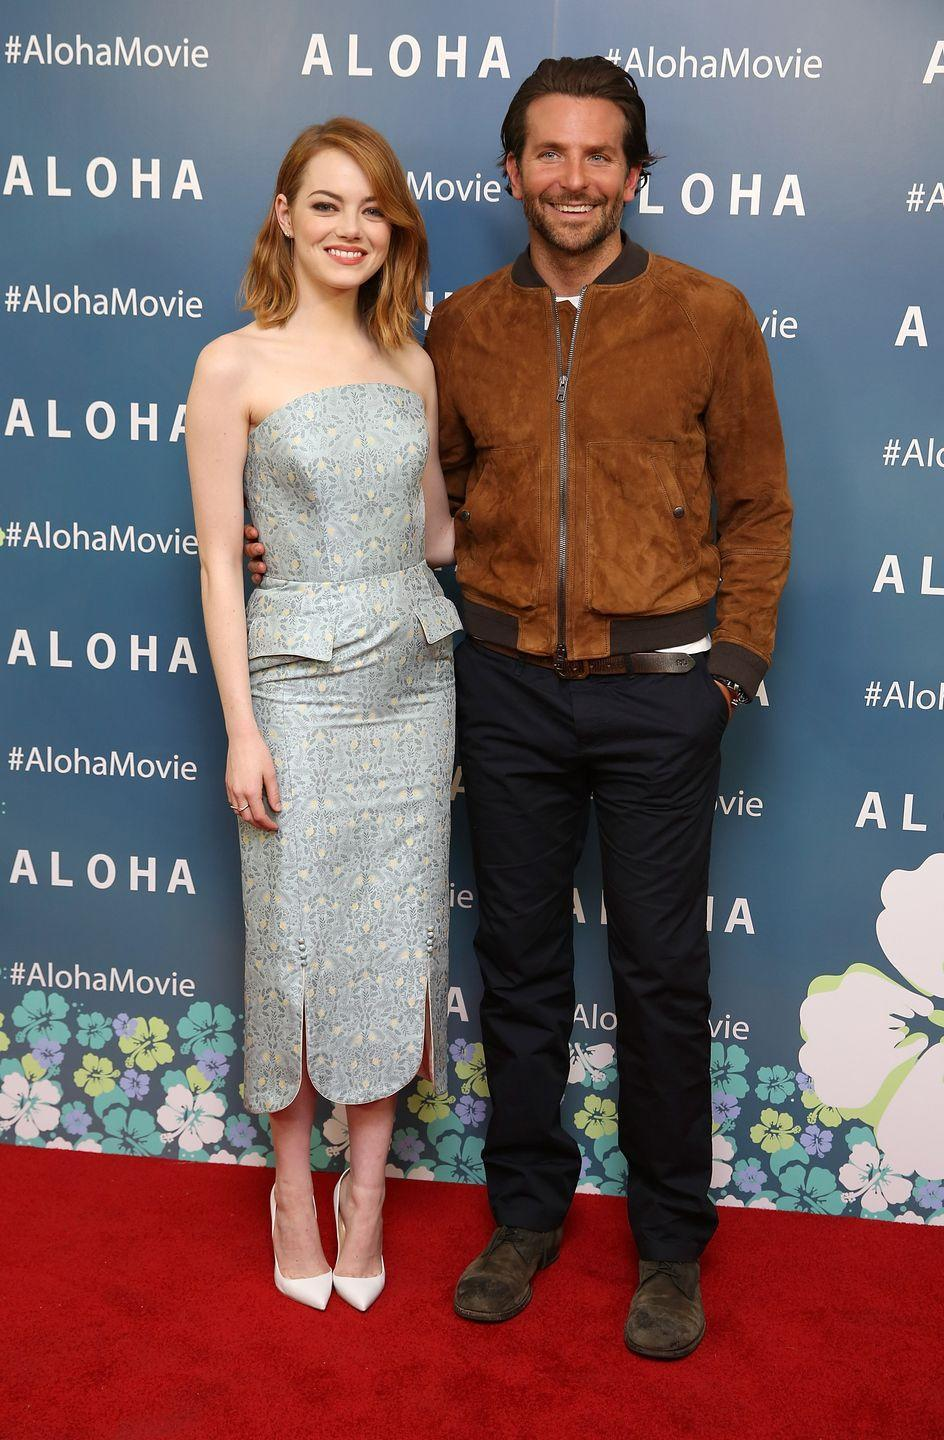 """<p>While they were shooting the movie <em>Aloha</em>, Cooper's lease was up early, so Stone offered to have him as a roommate—well, technically """"<a href=""""http://www.eonline.com/news/660081/that-time-emma-stone-and-bradley-cooper-were-housemates-in-hawaii"""" rel=""""nofollow noopener"""" target=""""_blank"""" data-ylk=""""slk:housemate"""" class=""""link rapid-noclick-resp"""">housemate</a>,"""" according to Cooper.</p>"""